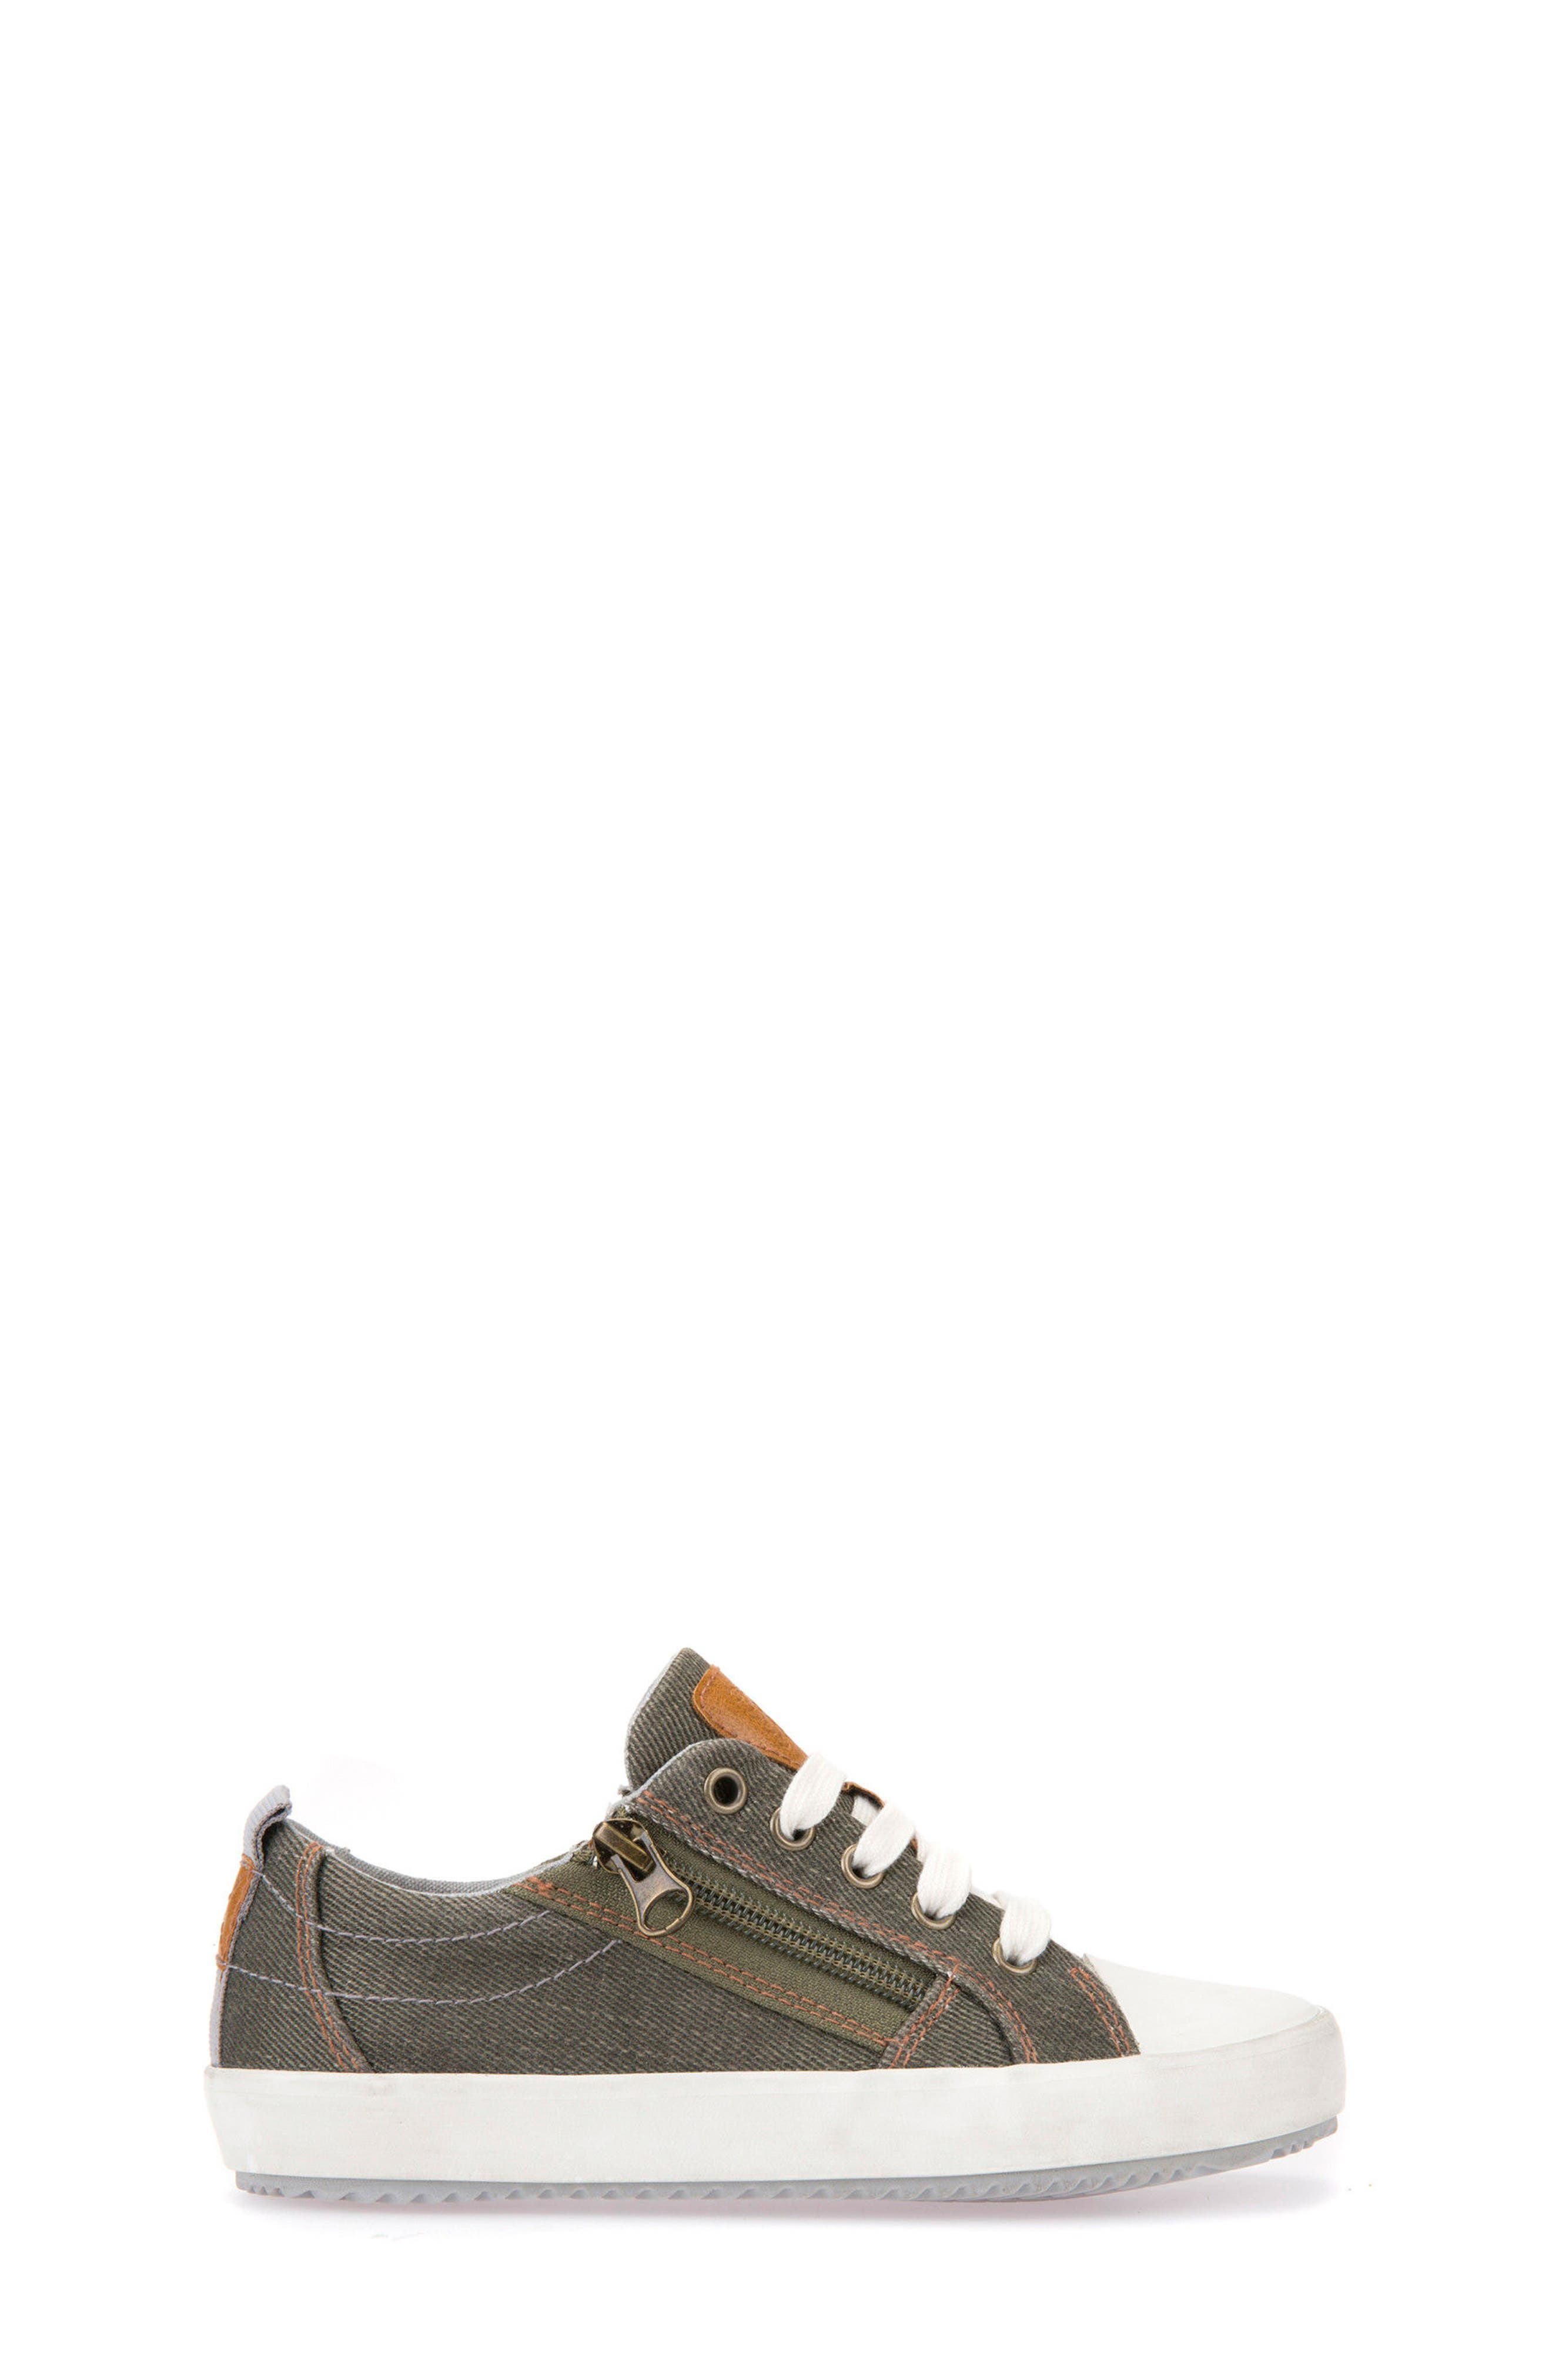 Alonisso Low Top Sneaker,                             Alternate thumbnail 3, color,                             MILITARY/ GREY